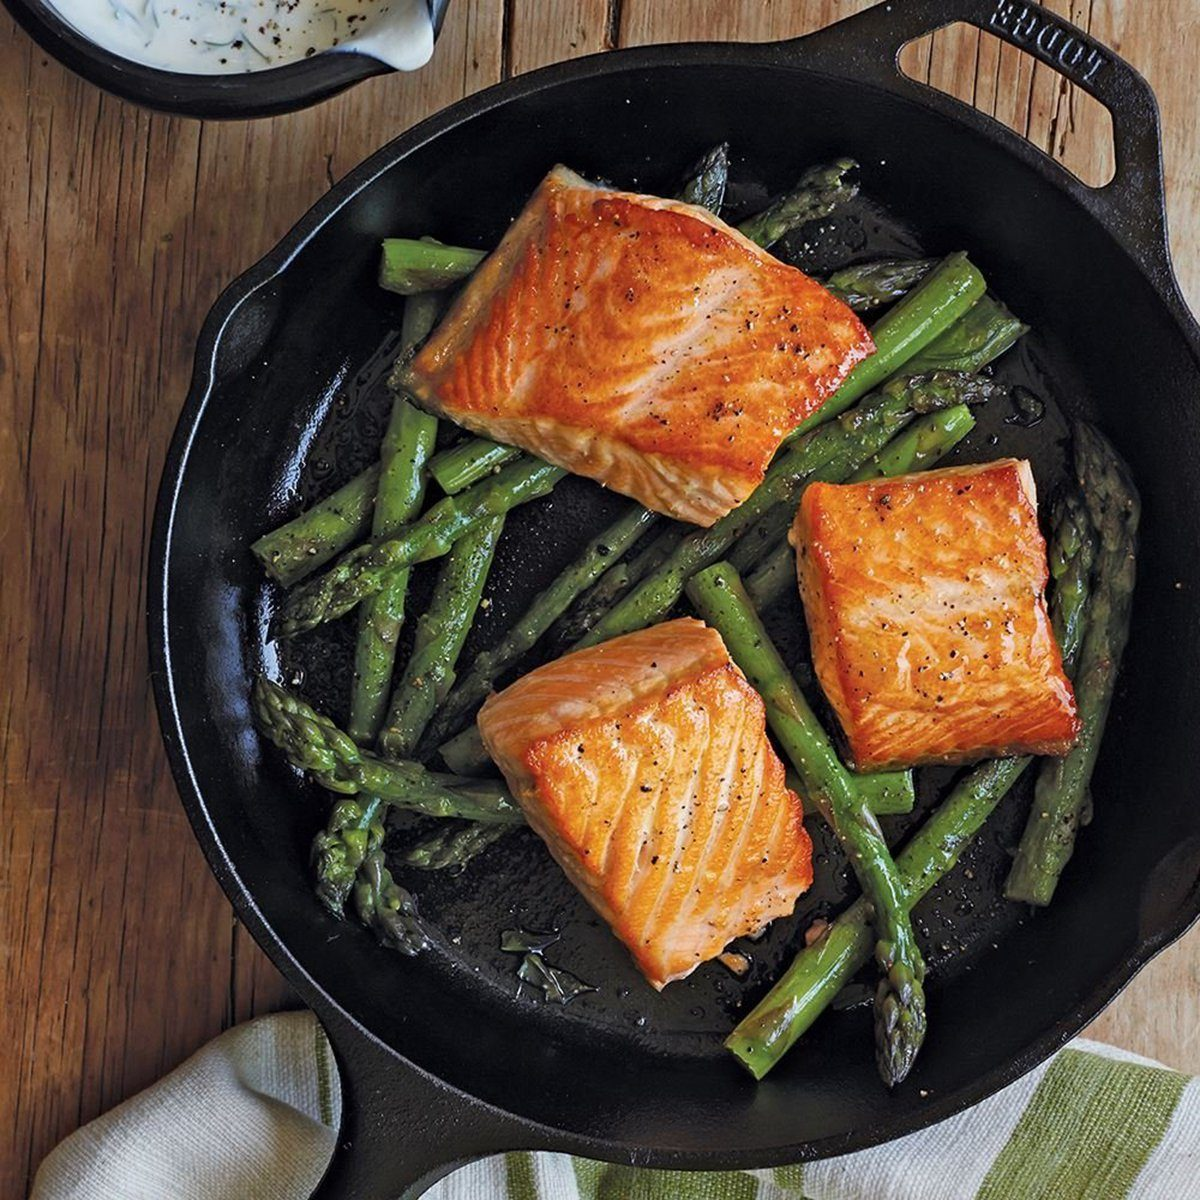 Lodge 10.25 Inch Cast Iron Skillet. Pre-Seasoned Cast Iron Skillet Pan for Stovetop of Oven Use